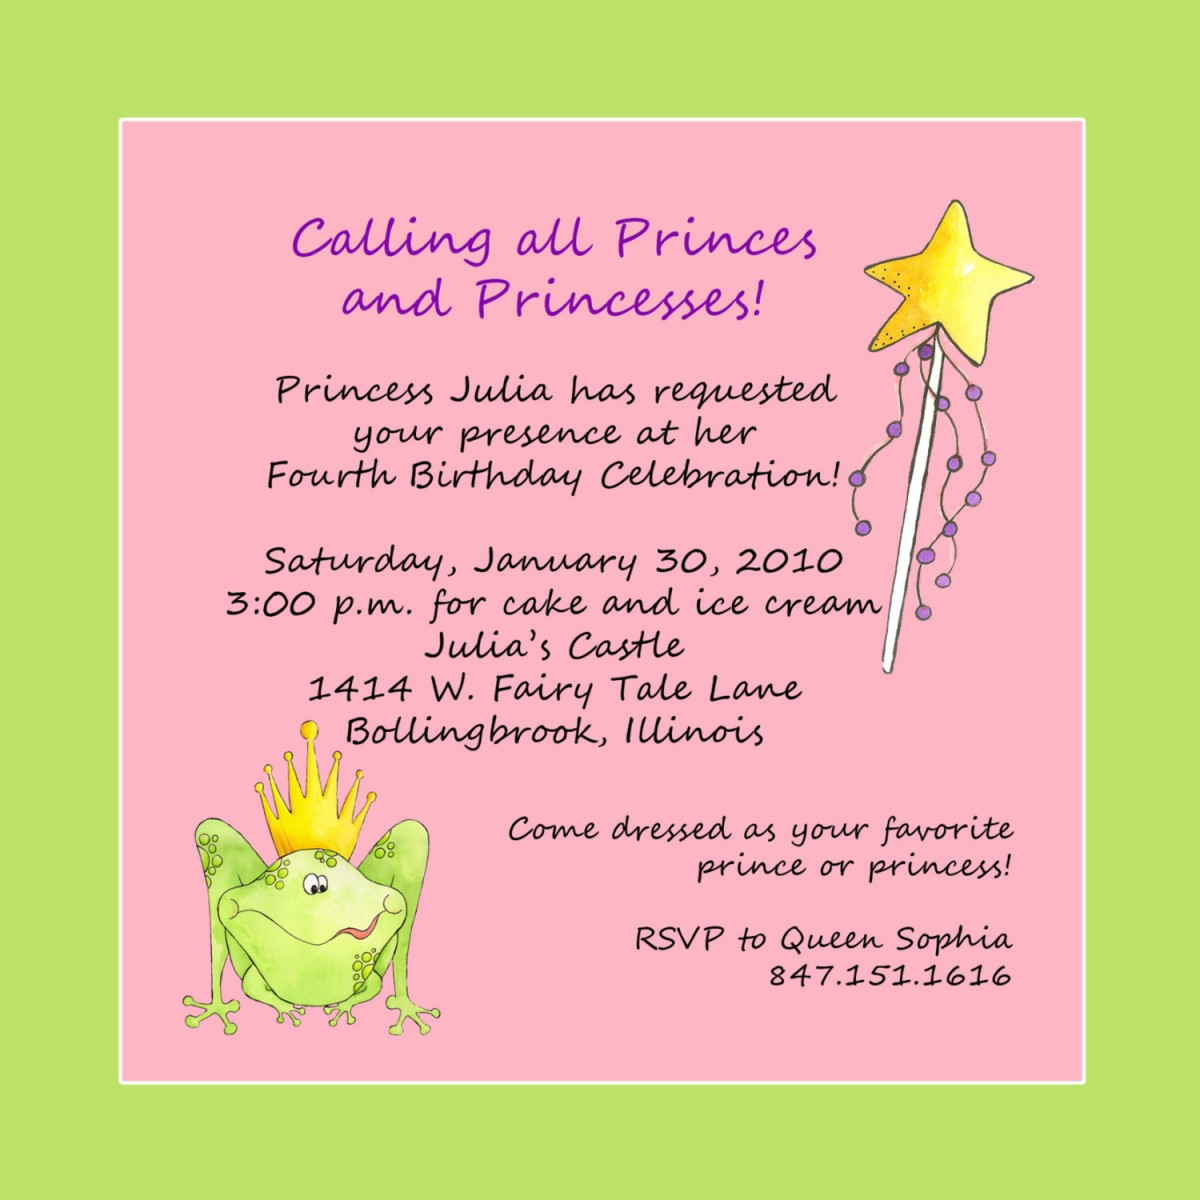 birthday party invitation sms ; birthday-party-invitation-text-mess-on-design-free-daughter-birthday-invitation-sms-with-green-hi